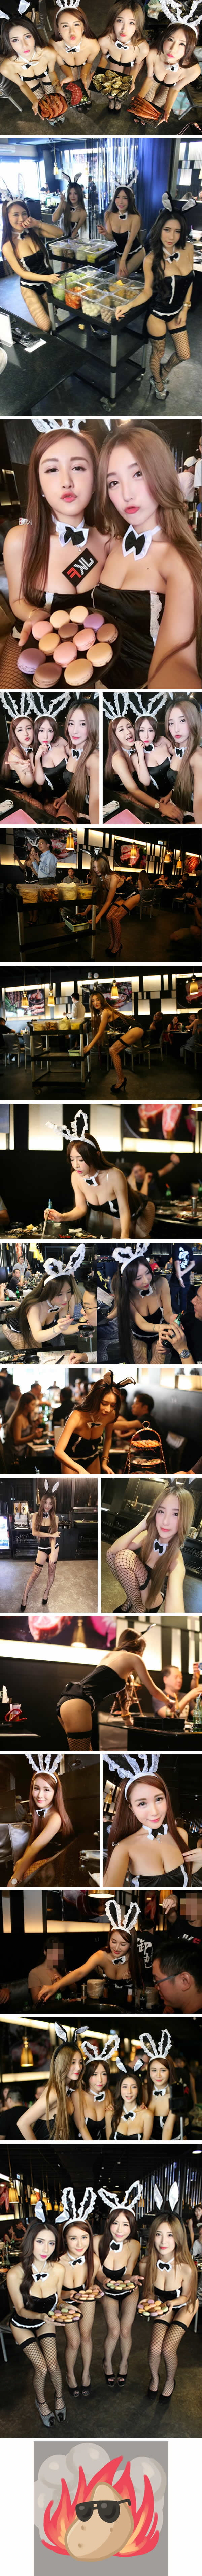 This Restaurant In Taiwan Has Girl Hosts Who Serve In Bunny Costumes